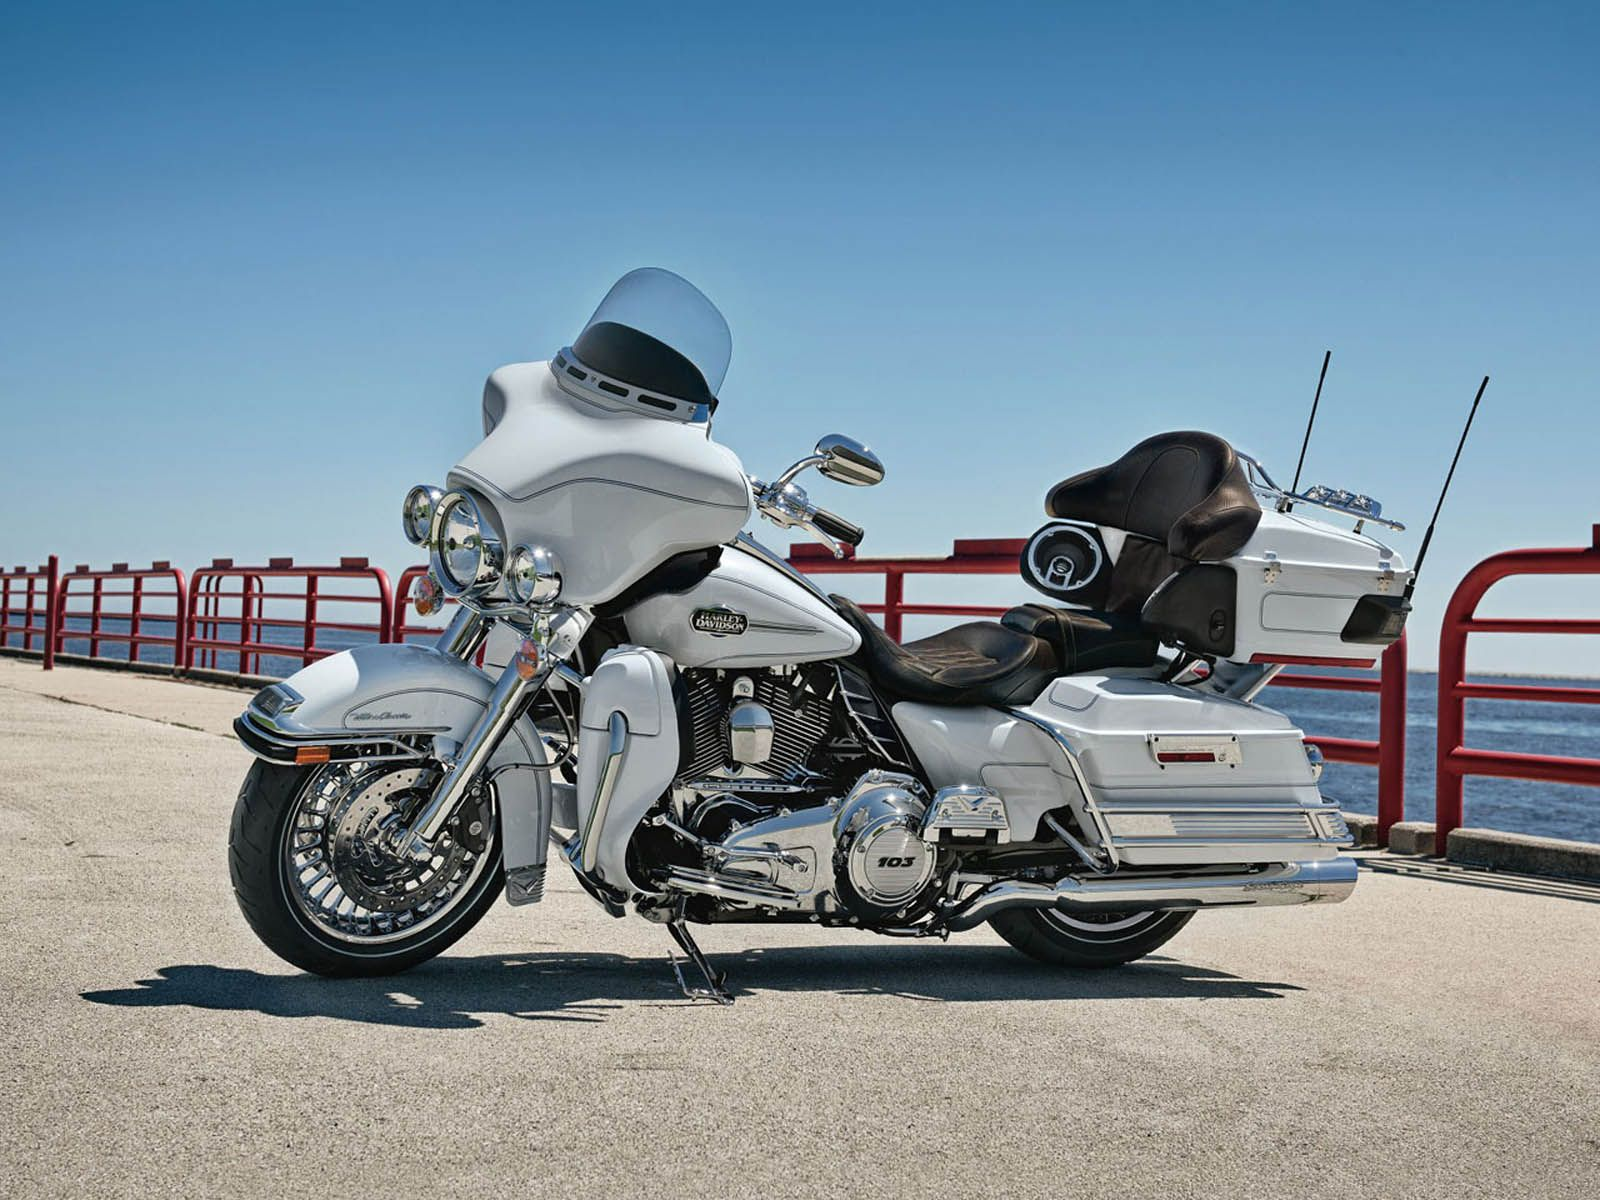 1600x1200 - Harley-Davidson Electra Glide Ultra Classic Wallpapers 9